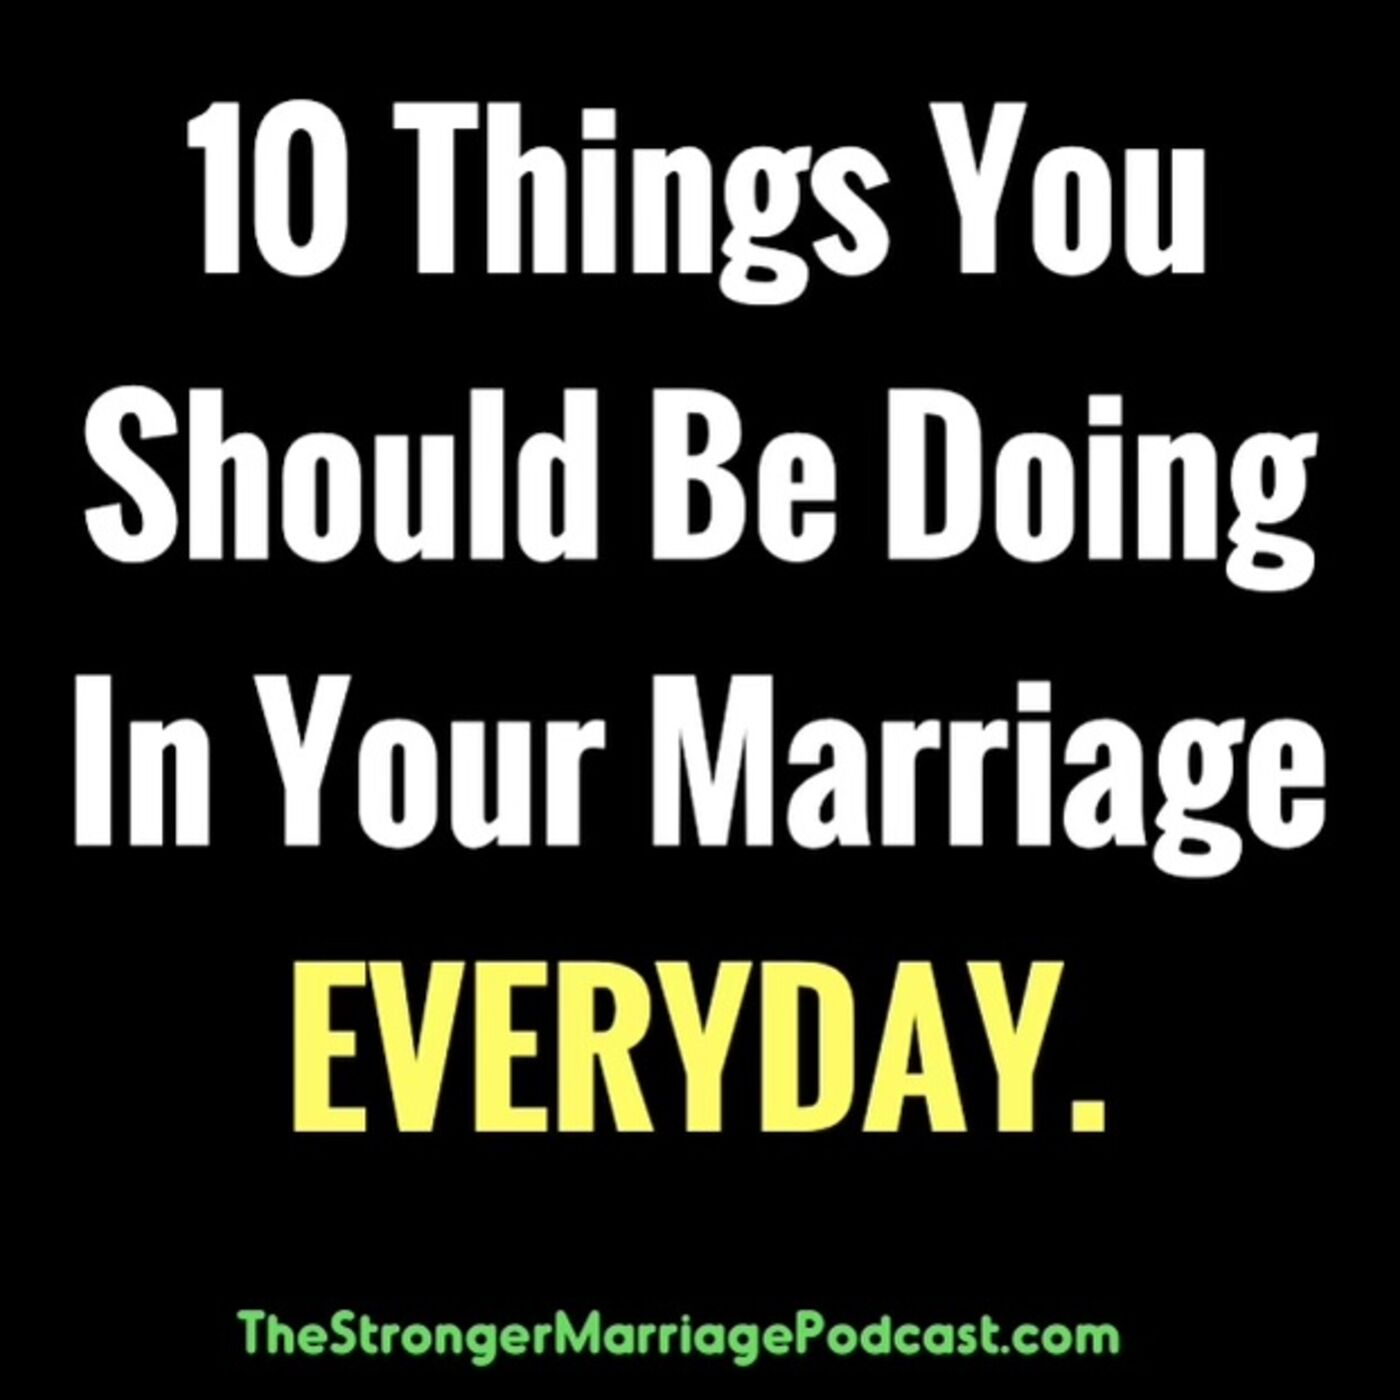 10 Great Things You Should Be Doing in Your Marriage EVERYDAY